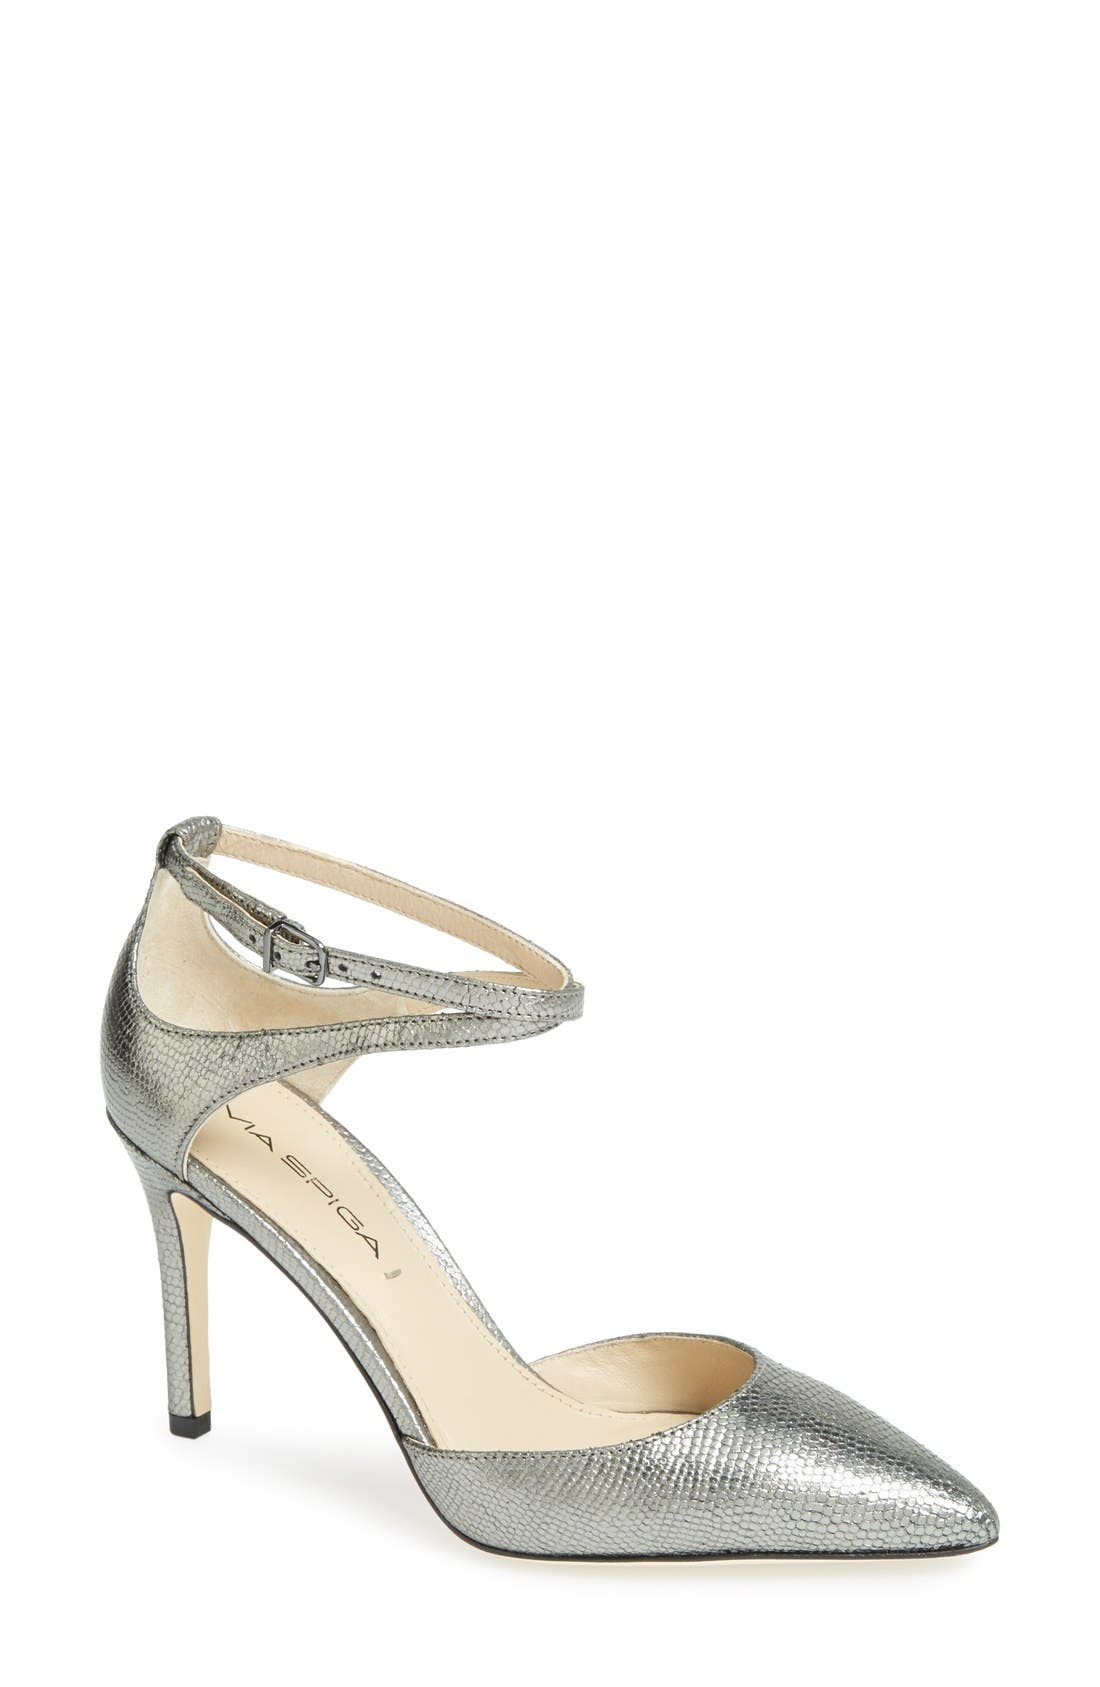 Main Image - Via Spiga 'Chera' Pump (Women)